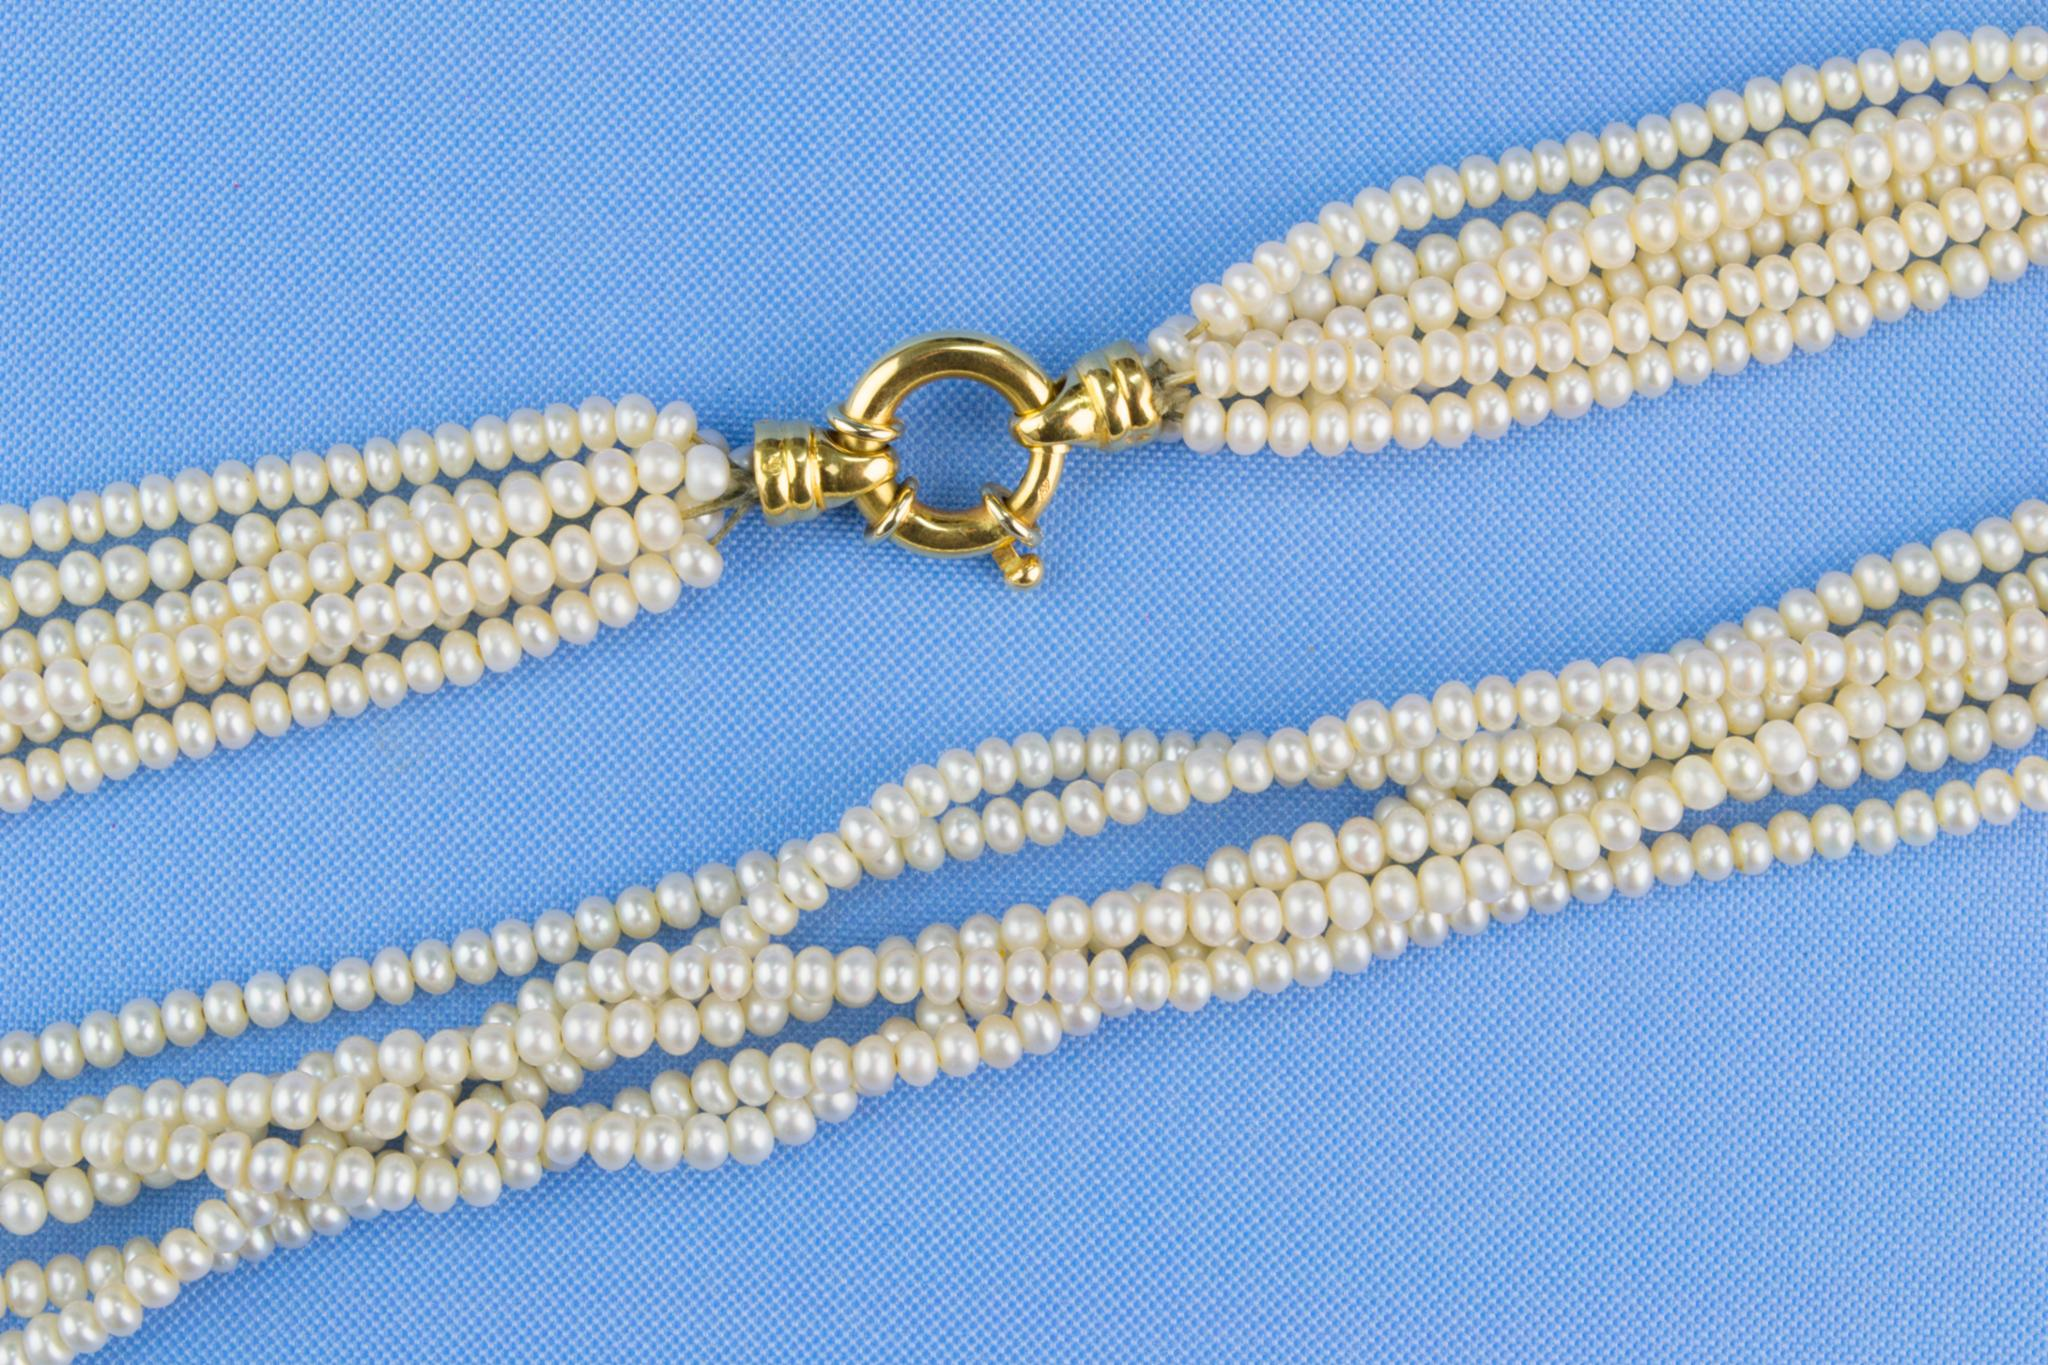 6 String Necklace 18ct Gold and Fresh Water Cultured Pearls